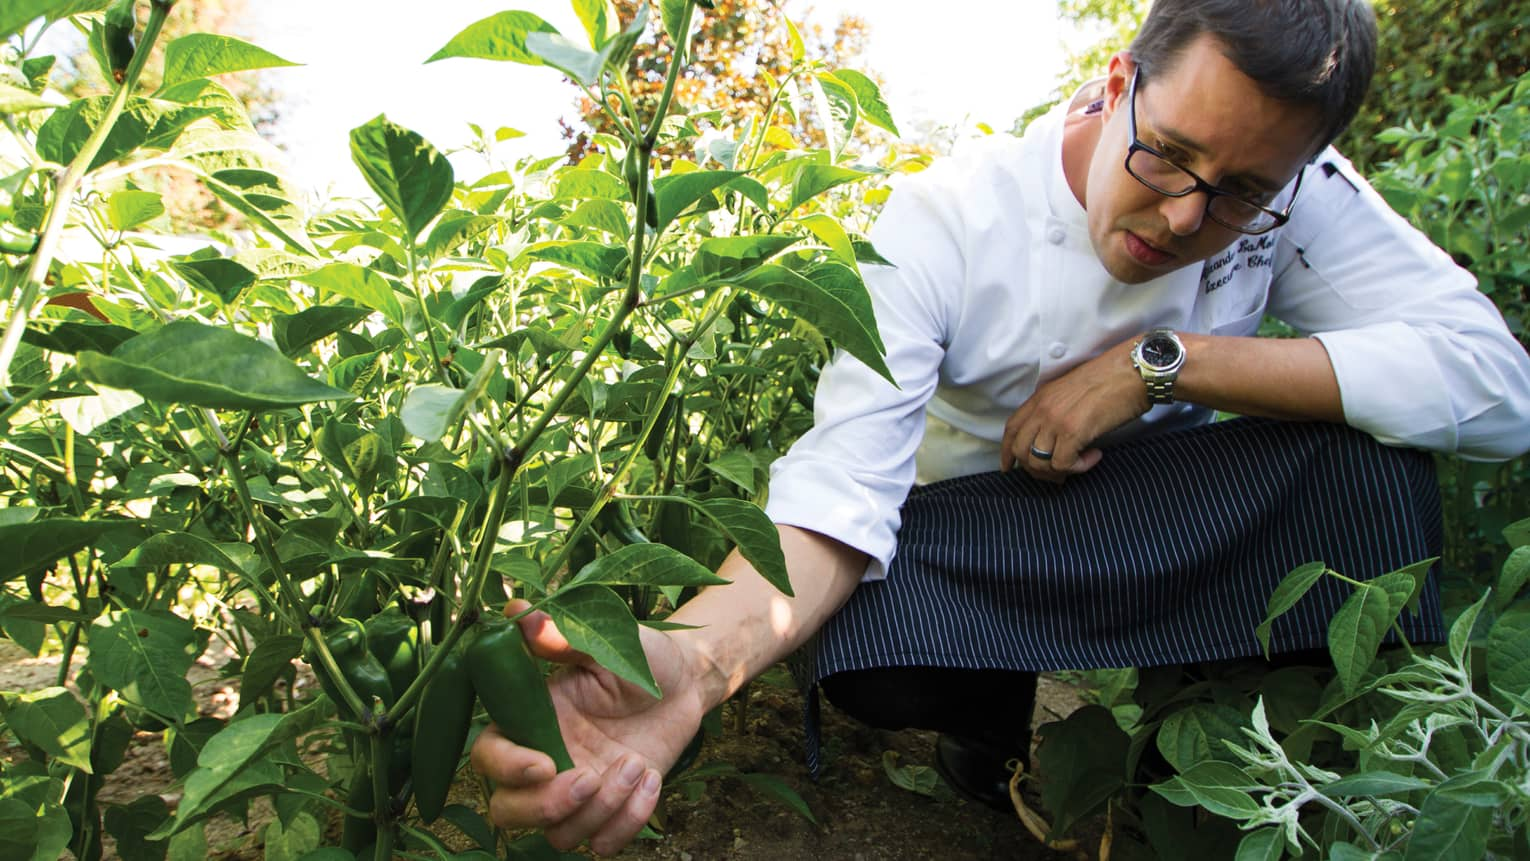 Chef kneels in garden beside tall plant, holds green pepper on vine